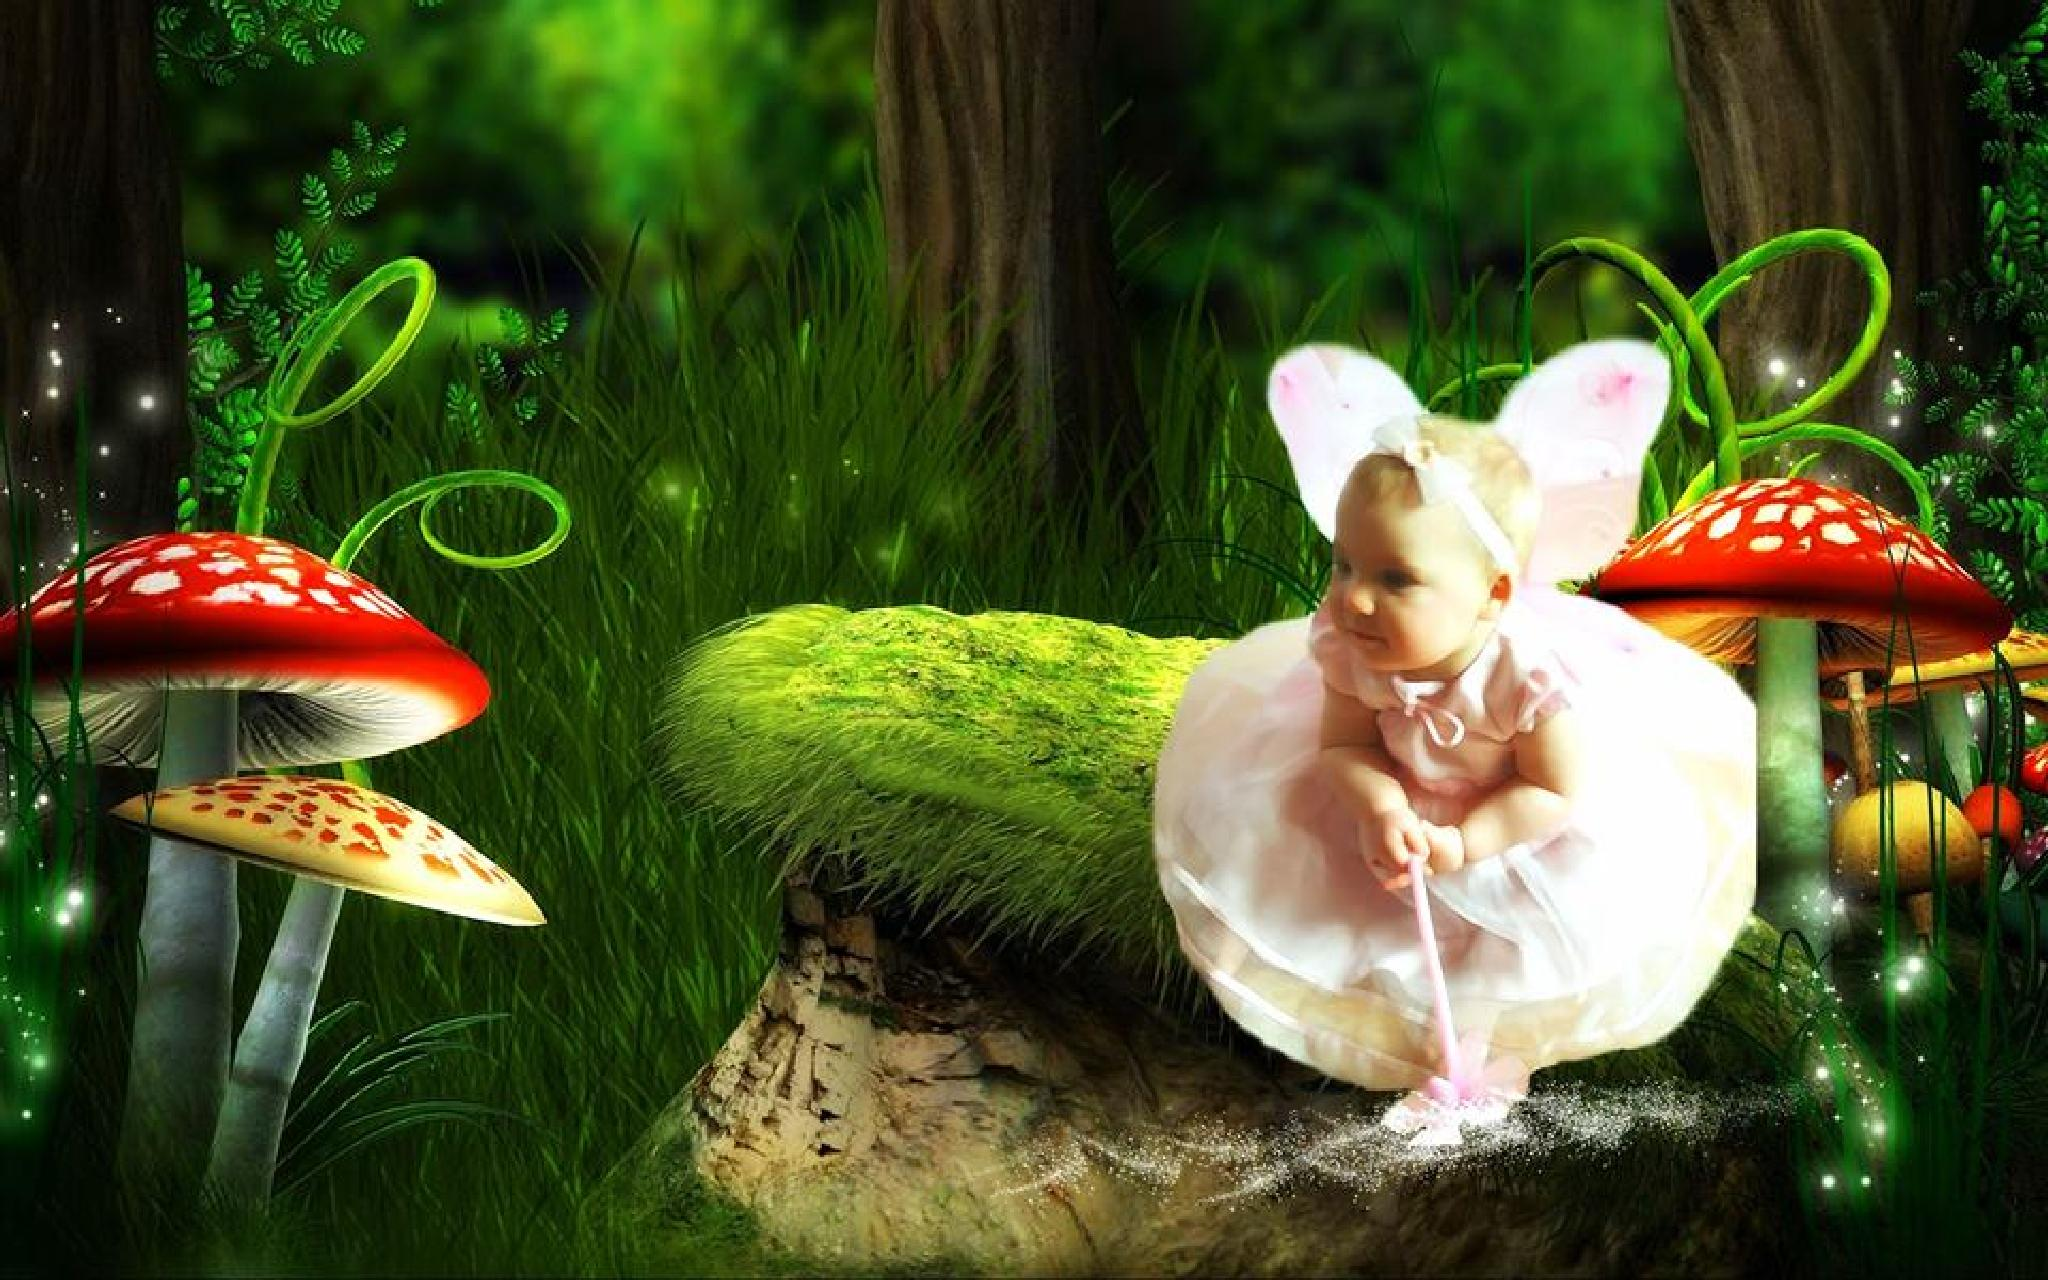 Fairy Baby by kayleigh.hunter1